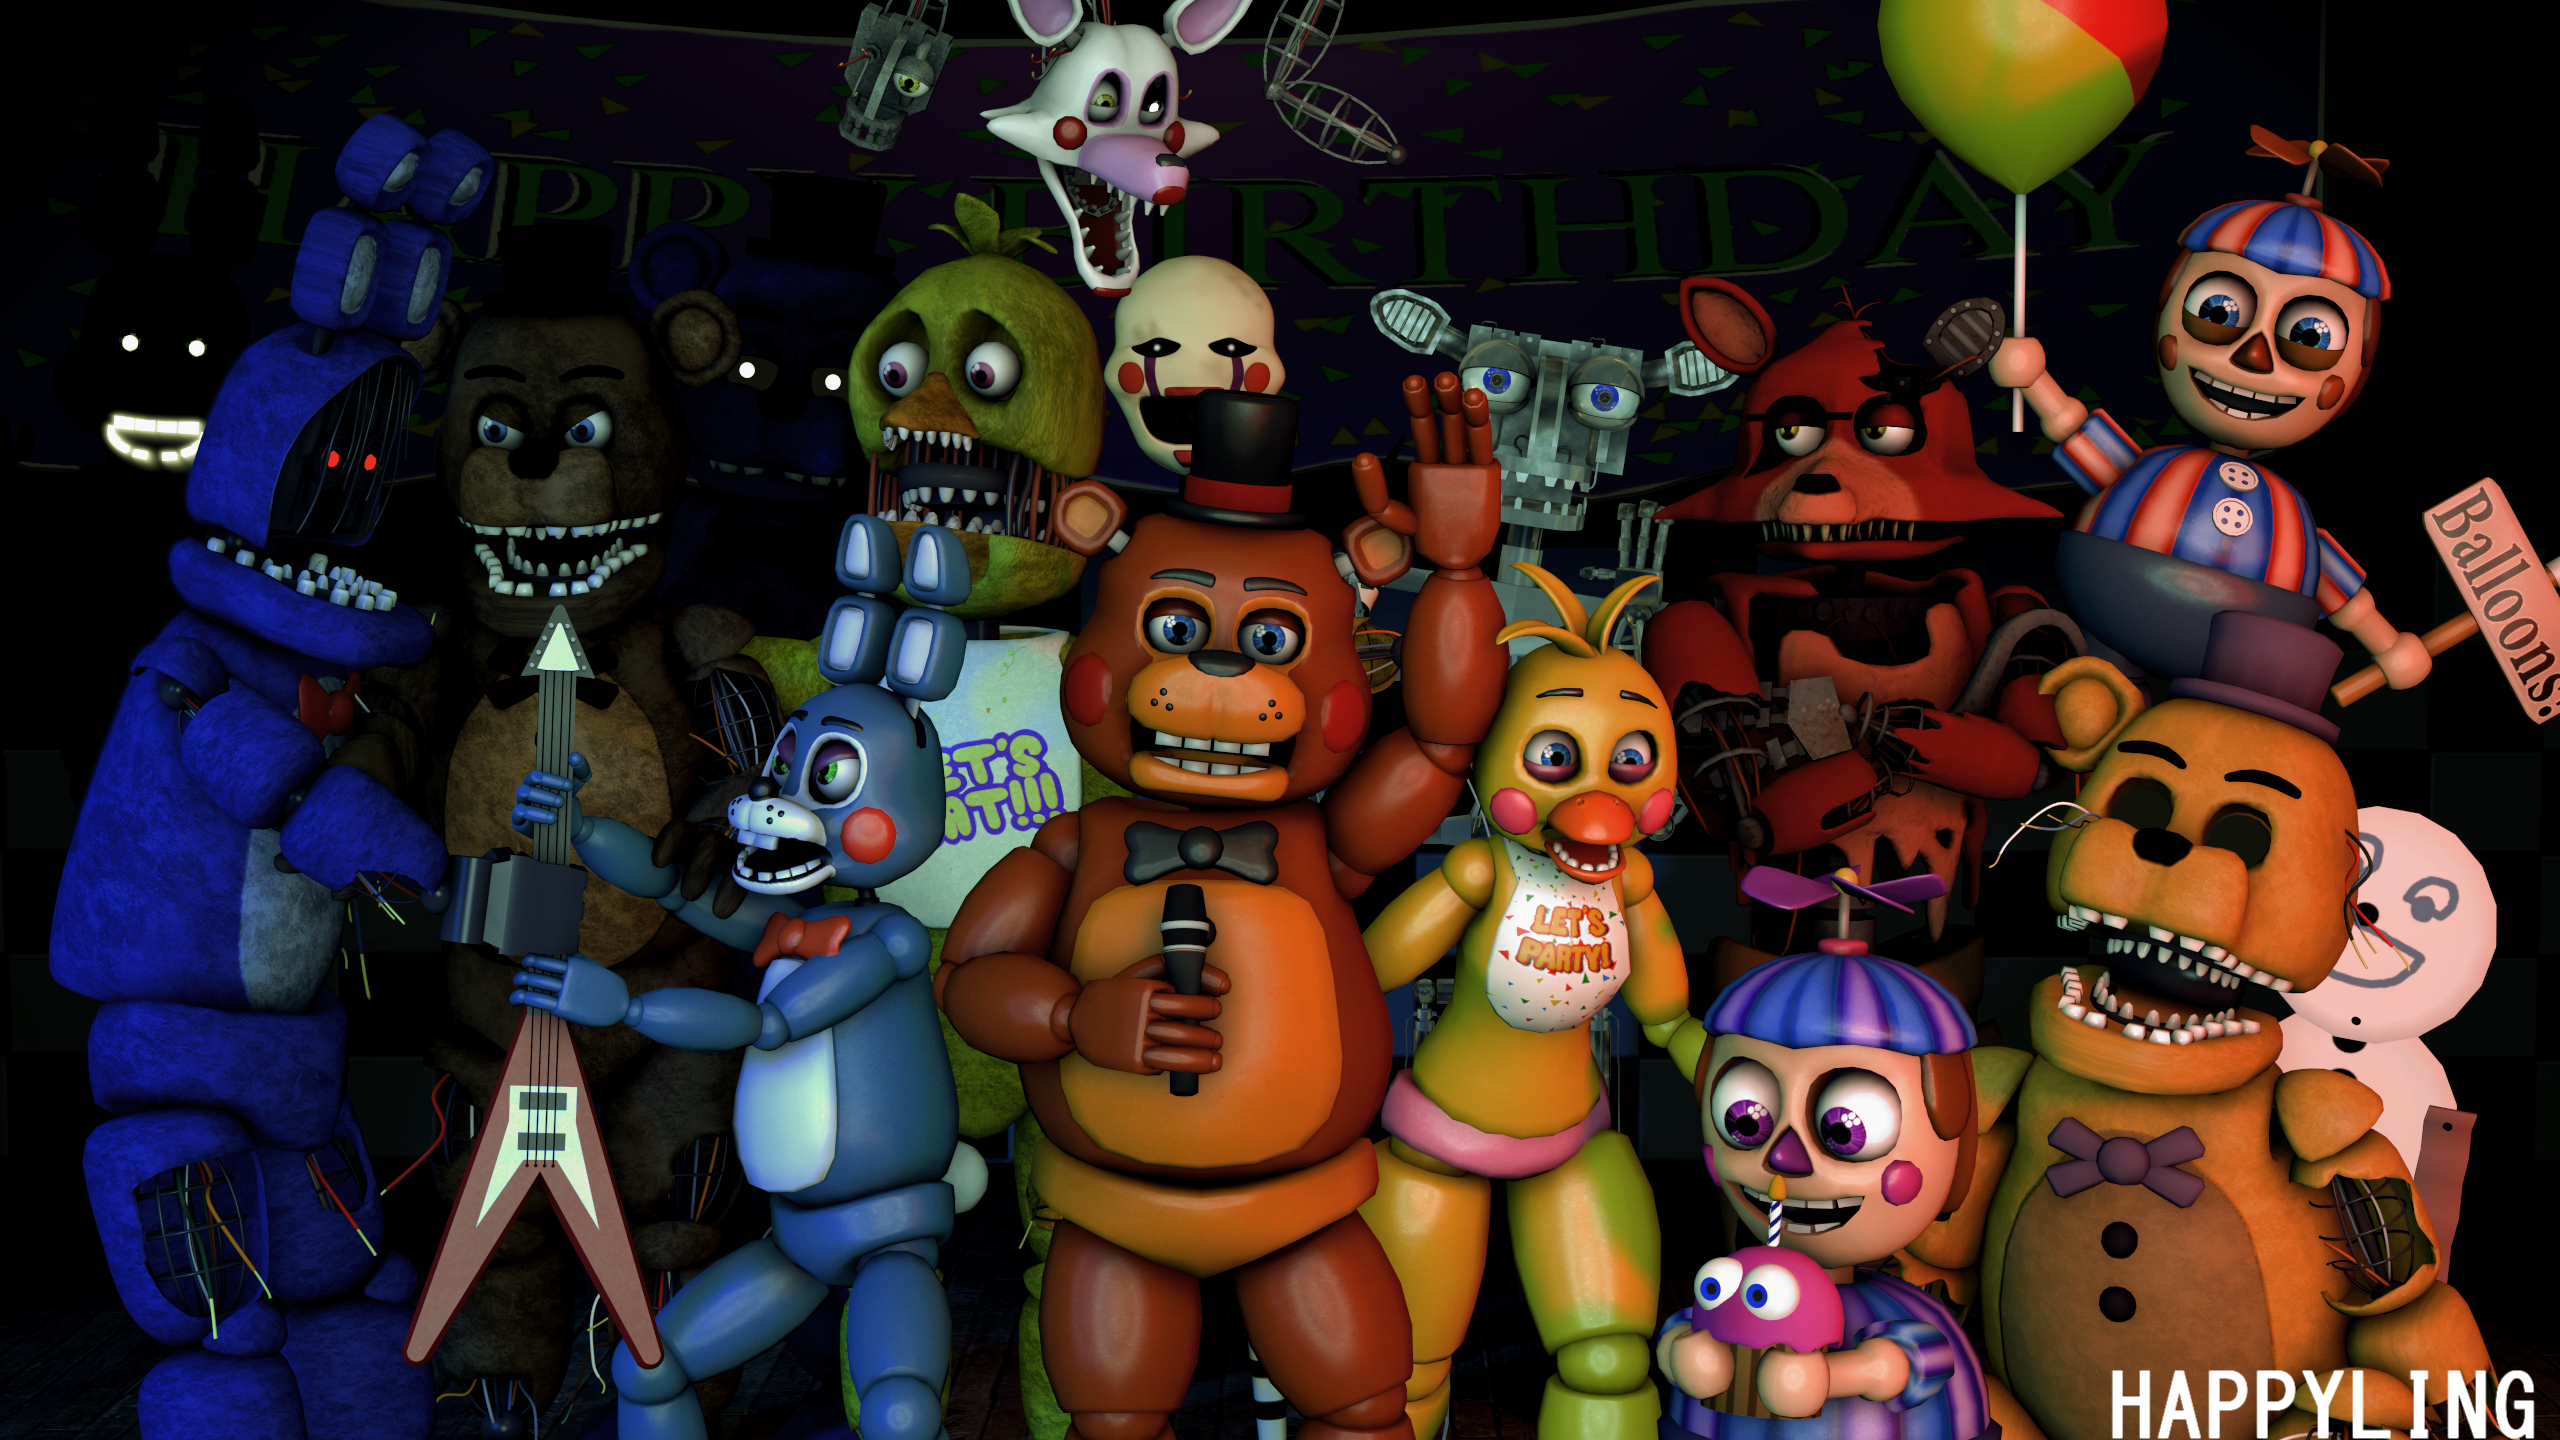 Five Nights At Freddys Images Sfm Fnaf Five Nights At Freddy S 2 By Happyling D97yydn Hd Wallpaper And Background P Os